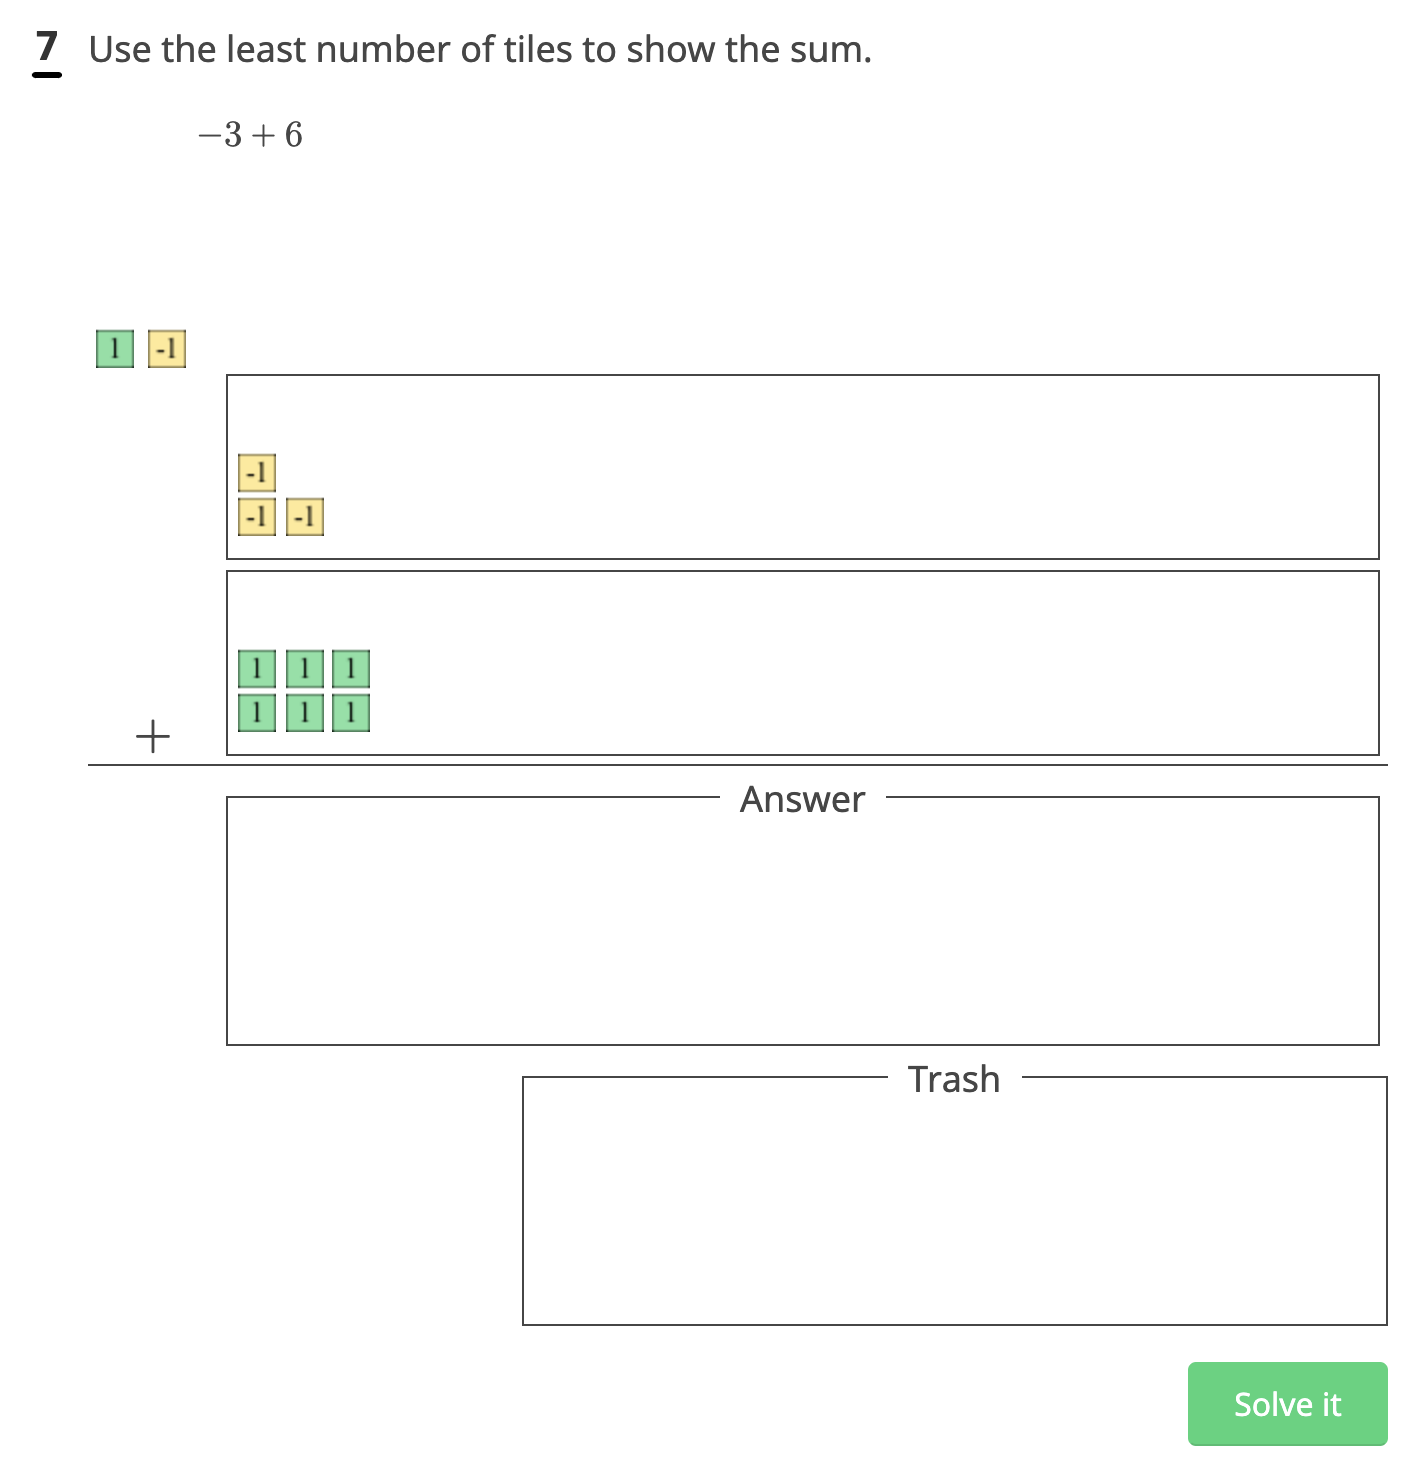 """Image of drag and drop question type which says """"Use the least number of tiles to show the sum."""""""